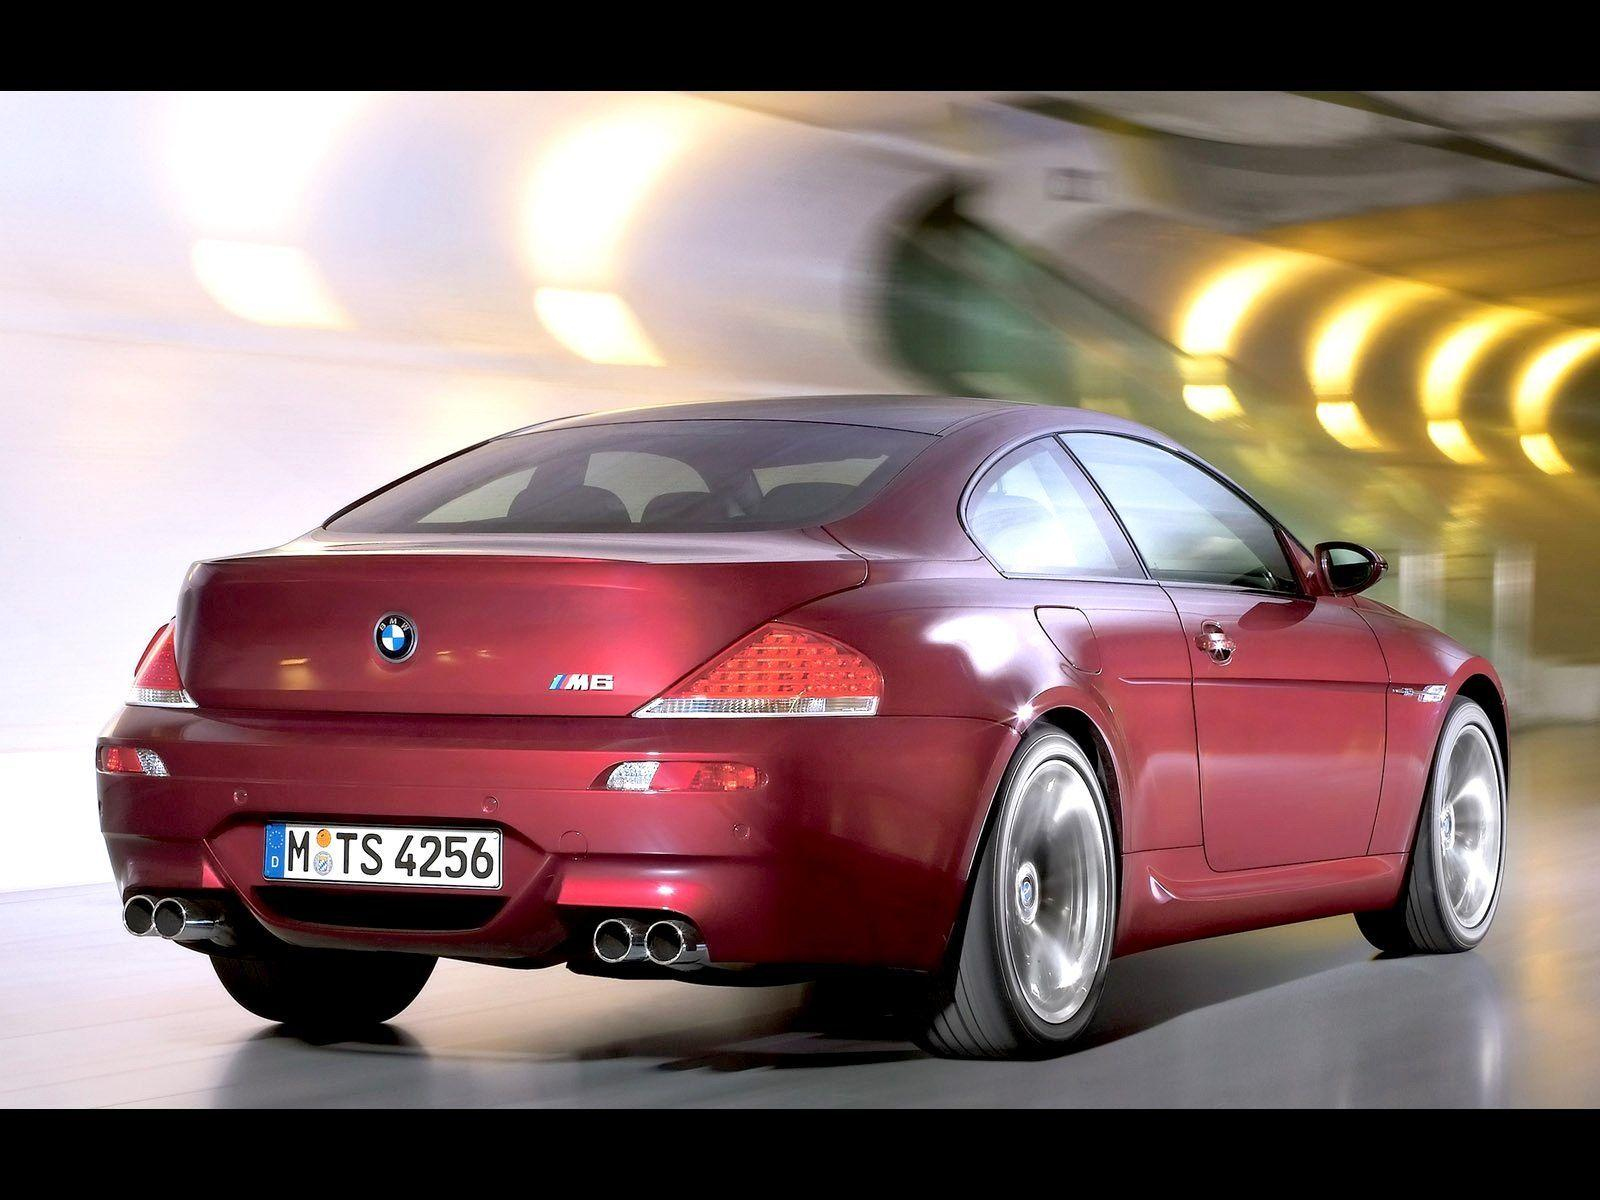 2006 BMW M6 Wallpaper 11 - 1600x1200